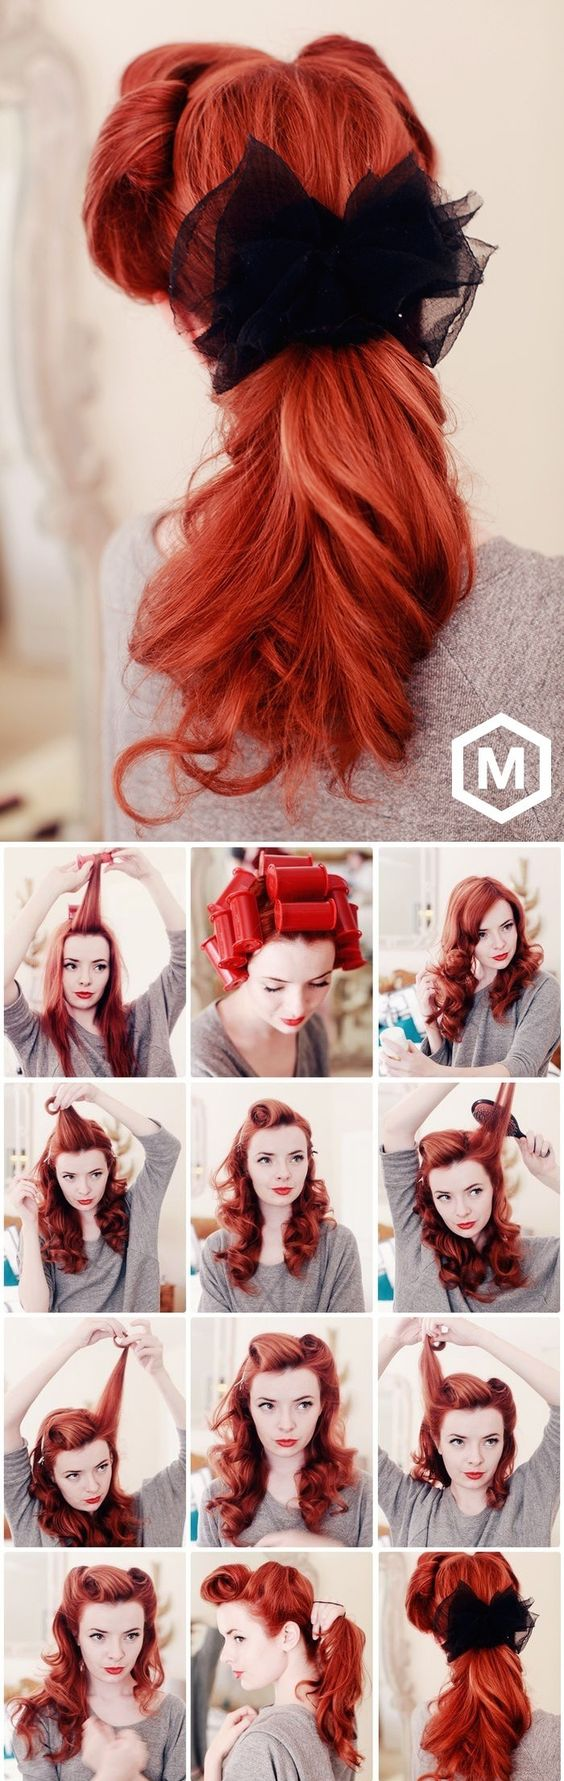 pin up hair step by step-will be trying this! | i love my job